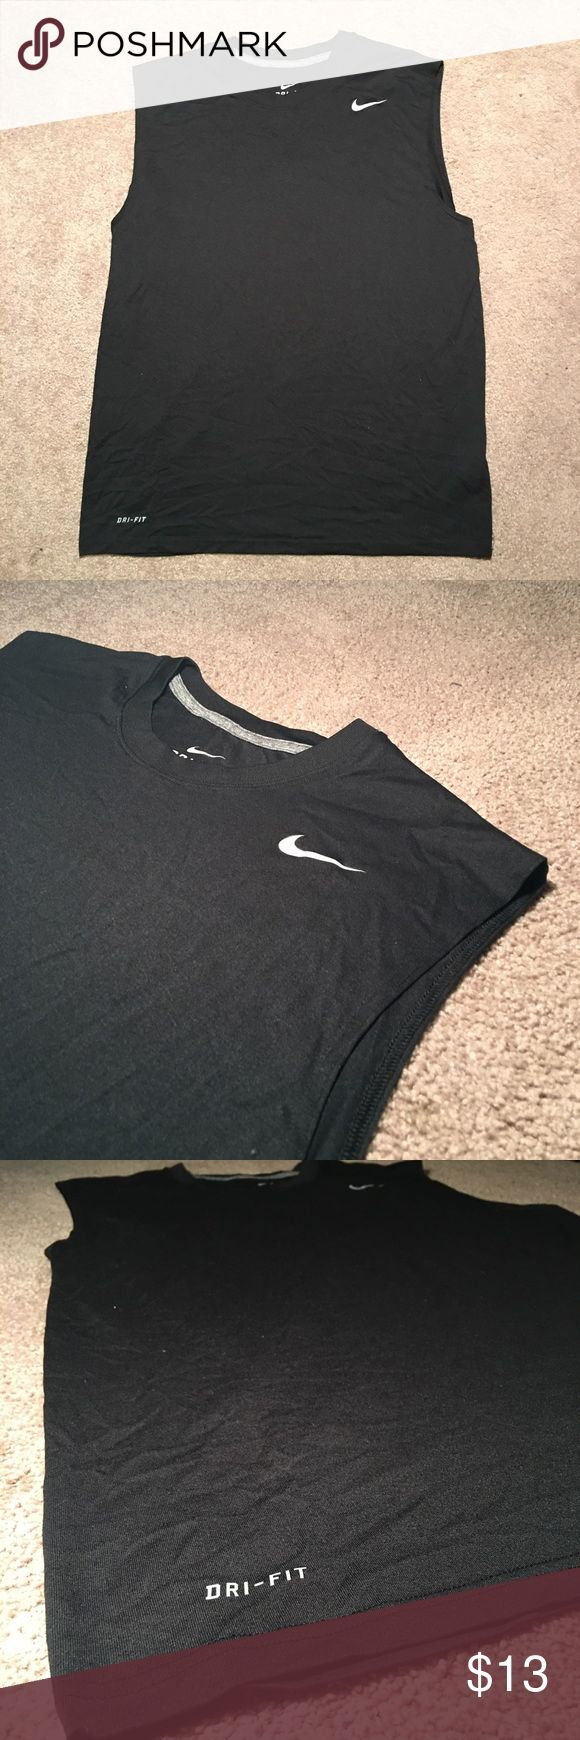 Men's Nike Dri Fit muscle shirt. Comfortable and I'm great condition. Nike Dri Fit. Awesome shirt to workout in. Nike Shirts Tank Tops